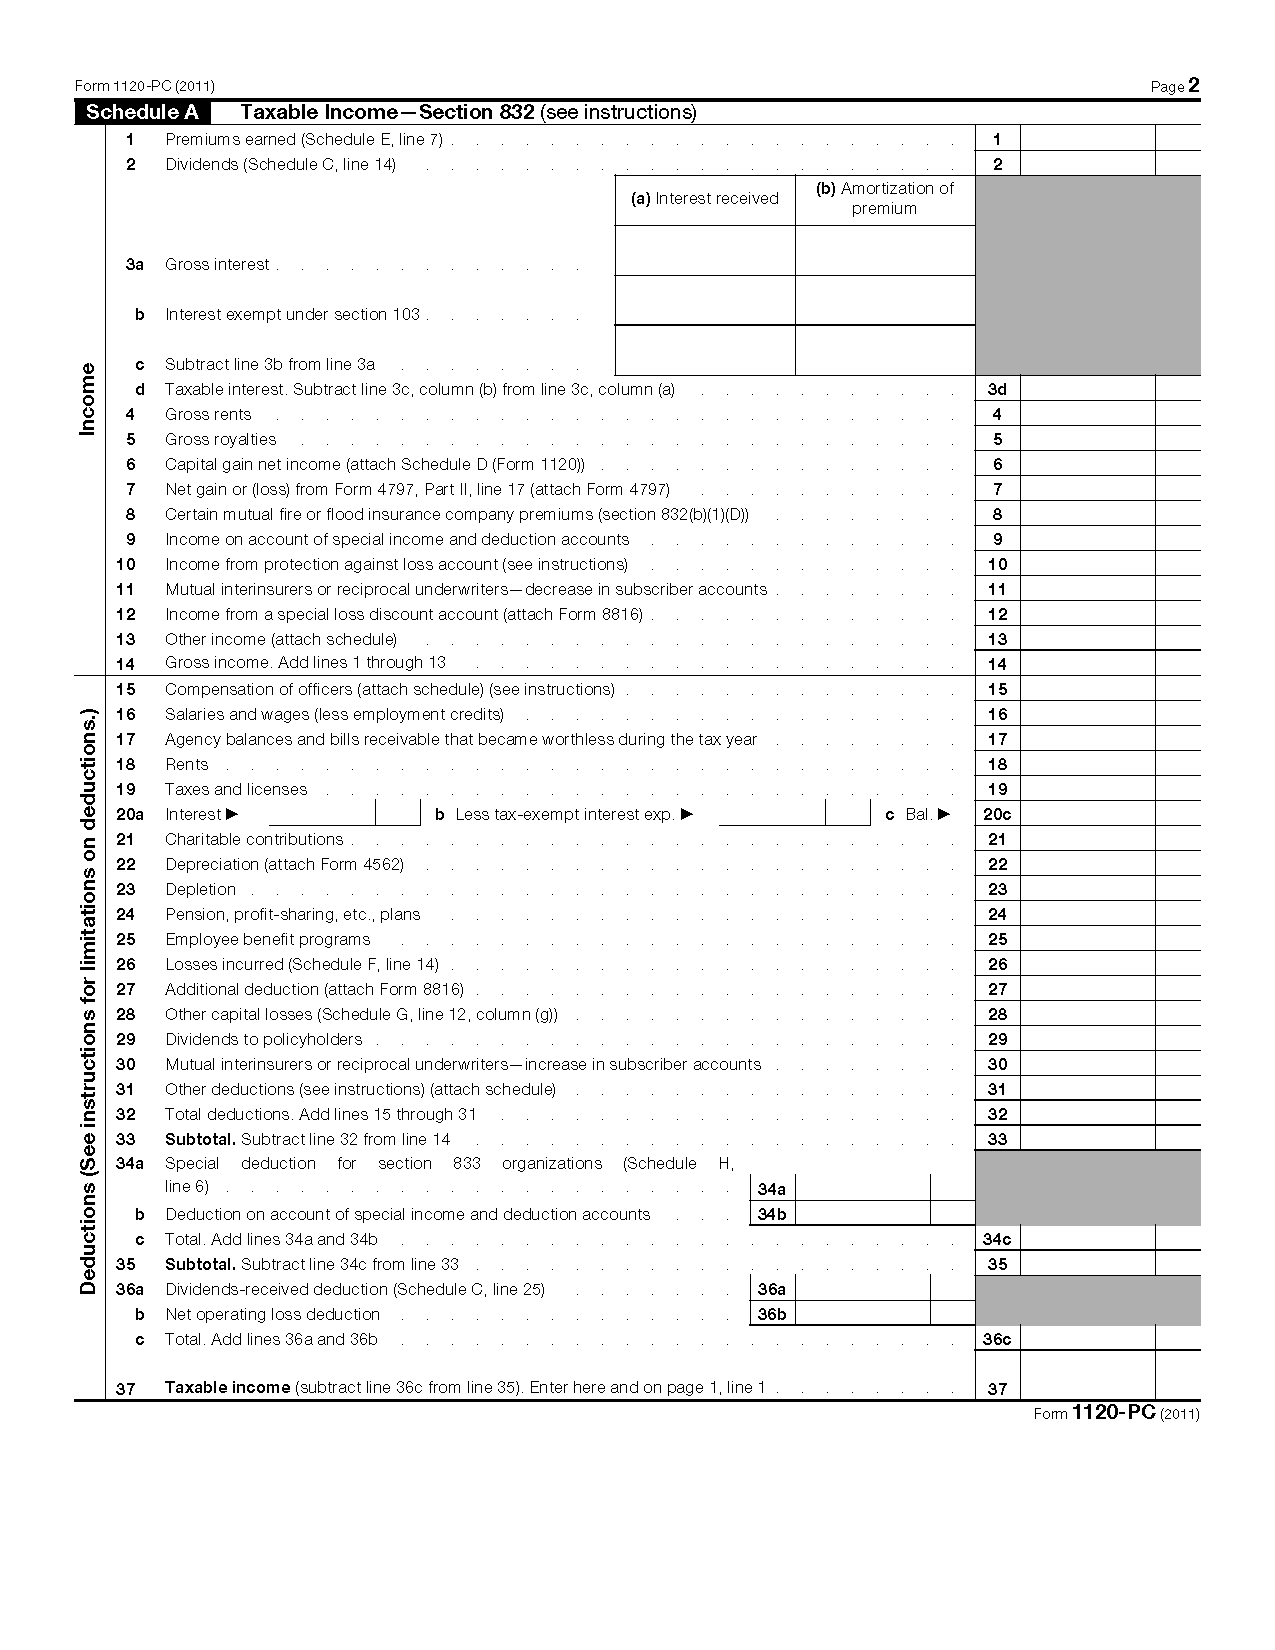 Writing service company tax return